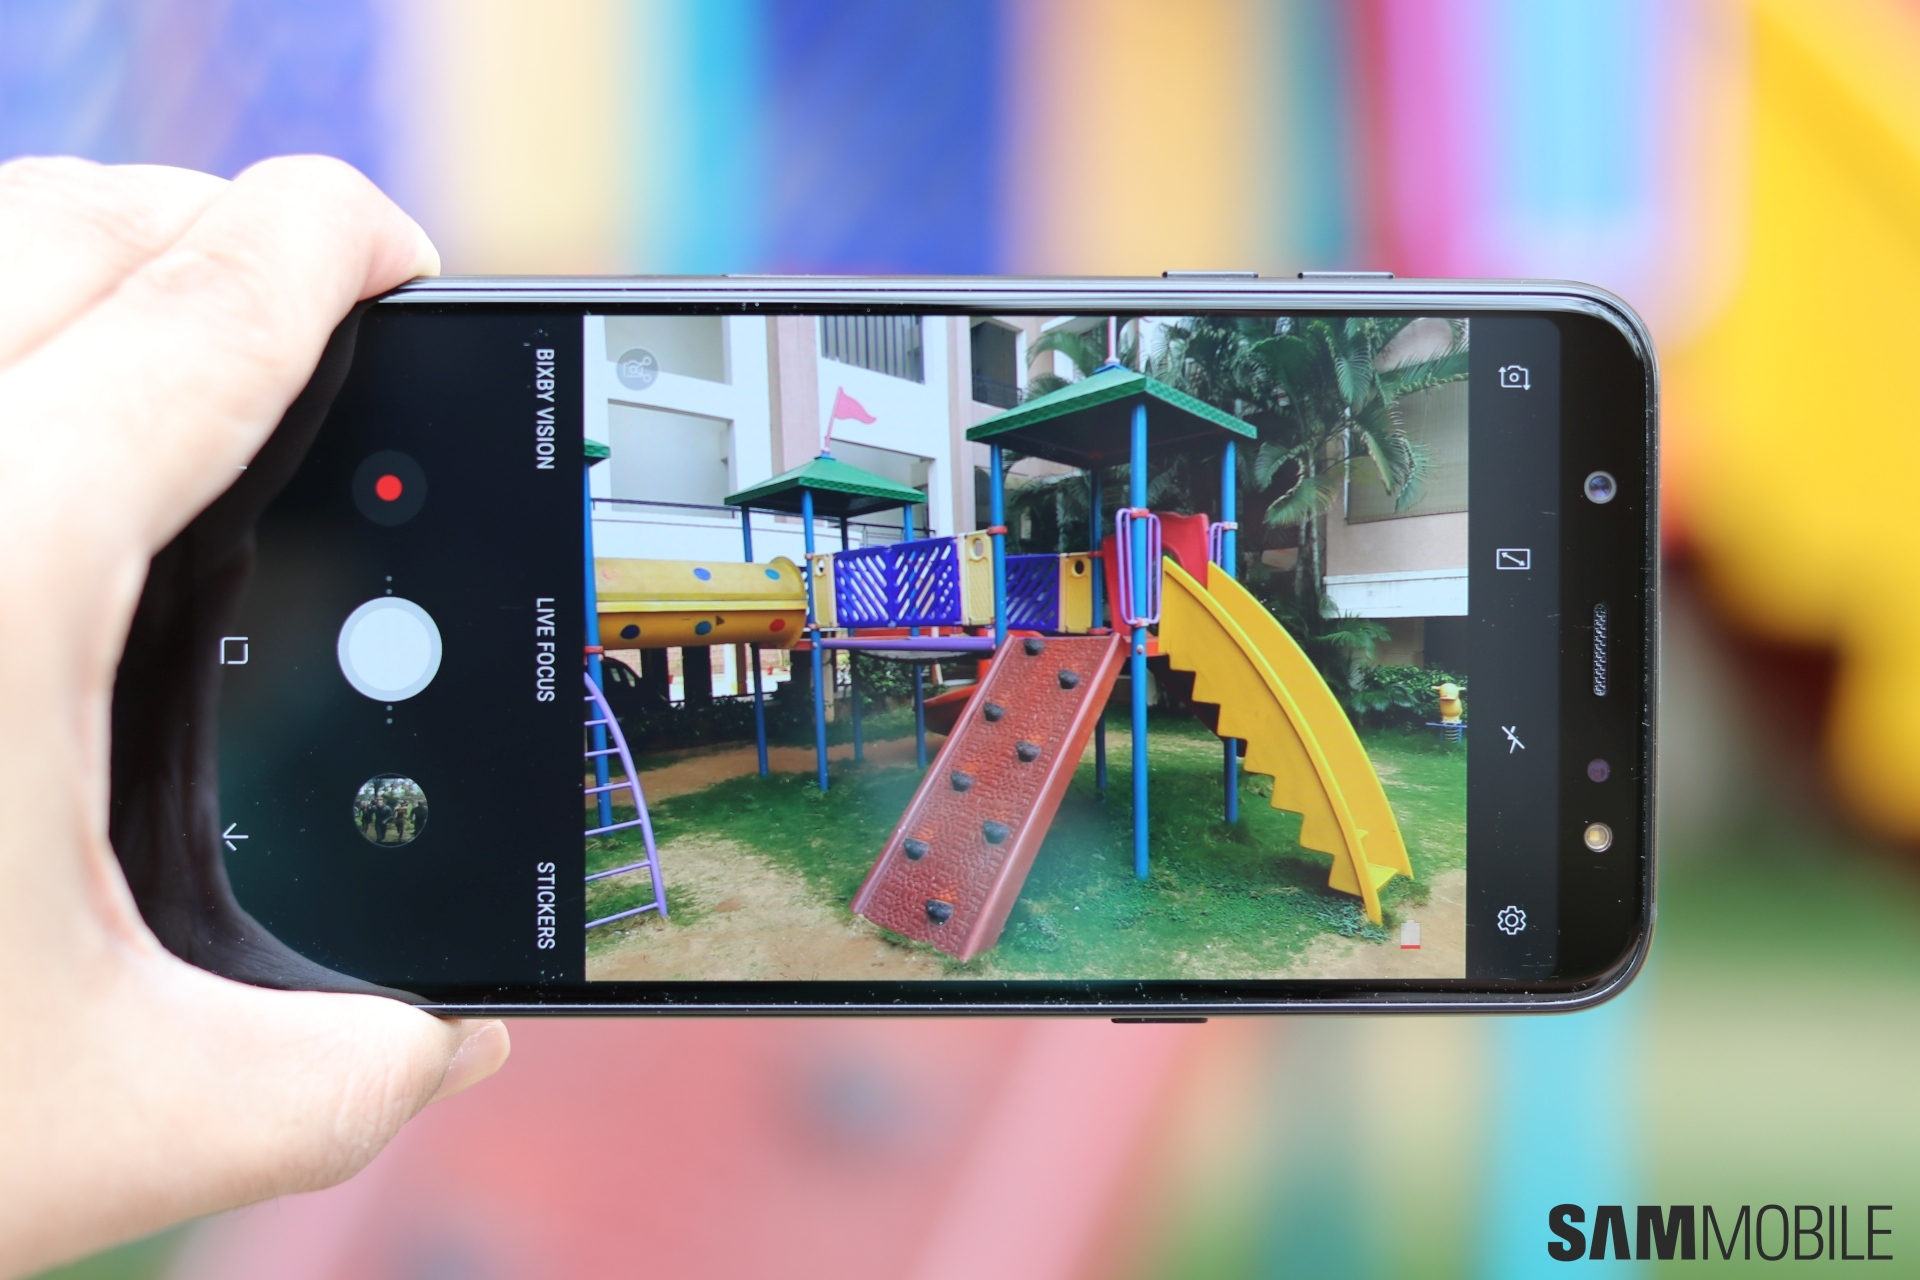 Samsung Galaxy A6+ initial impressions: An interesting proposition